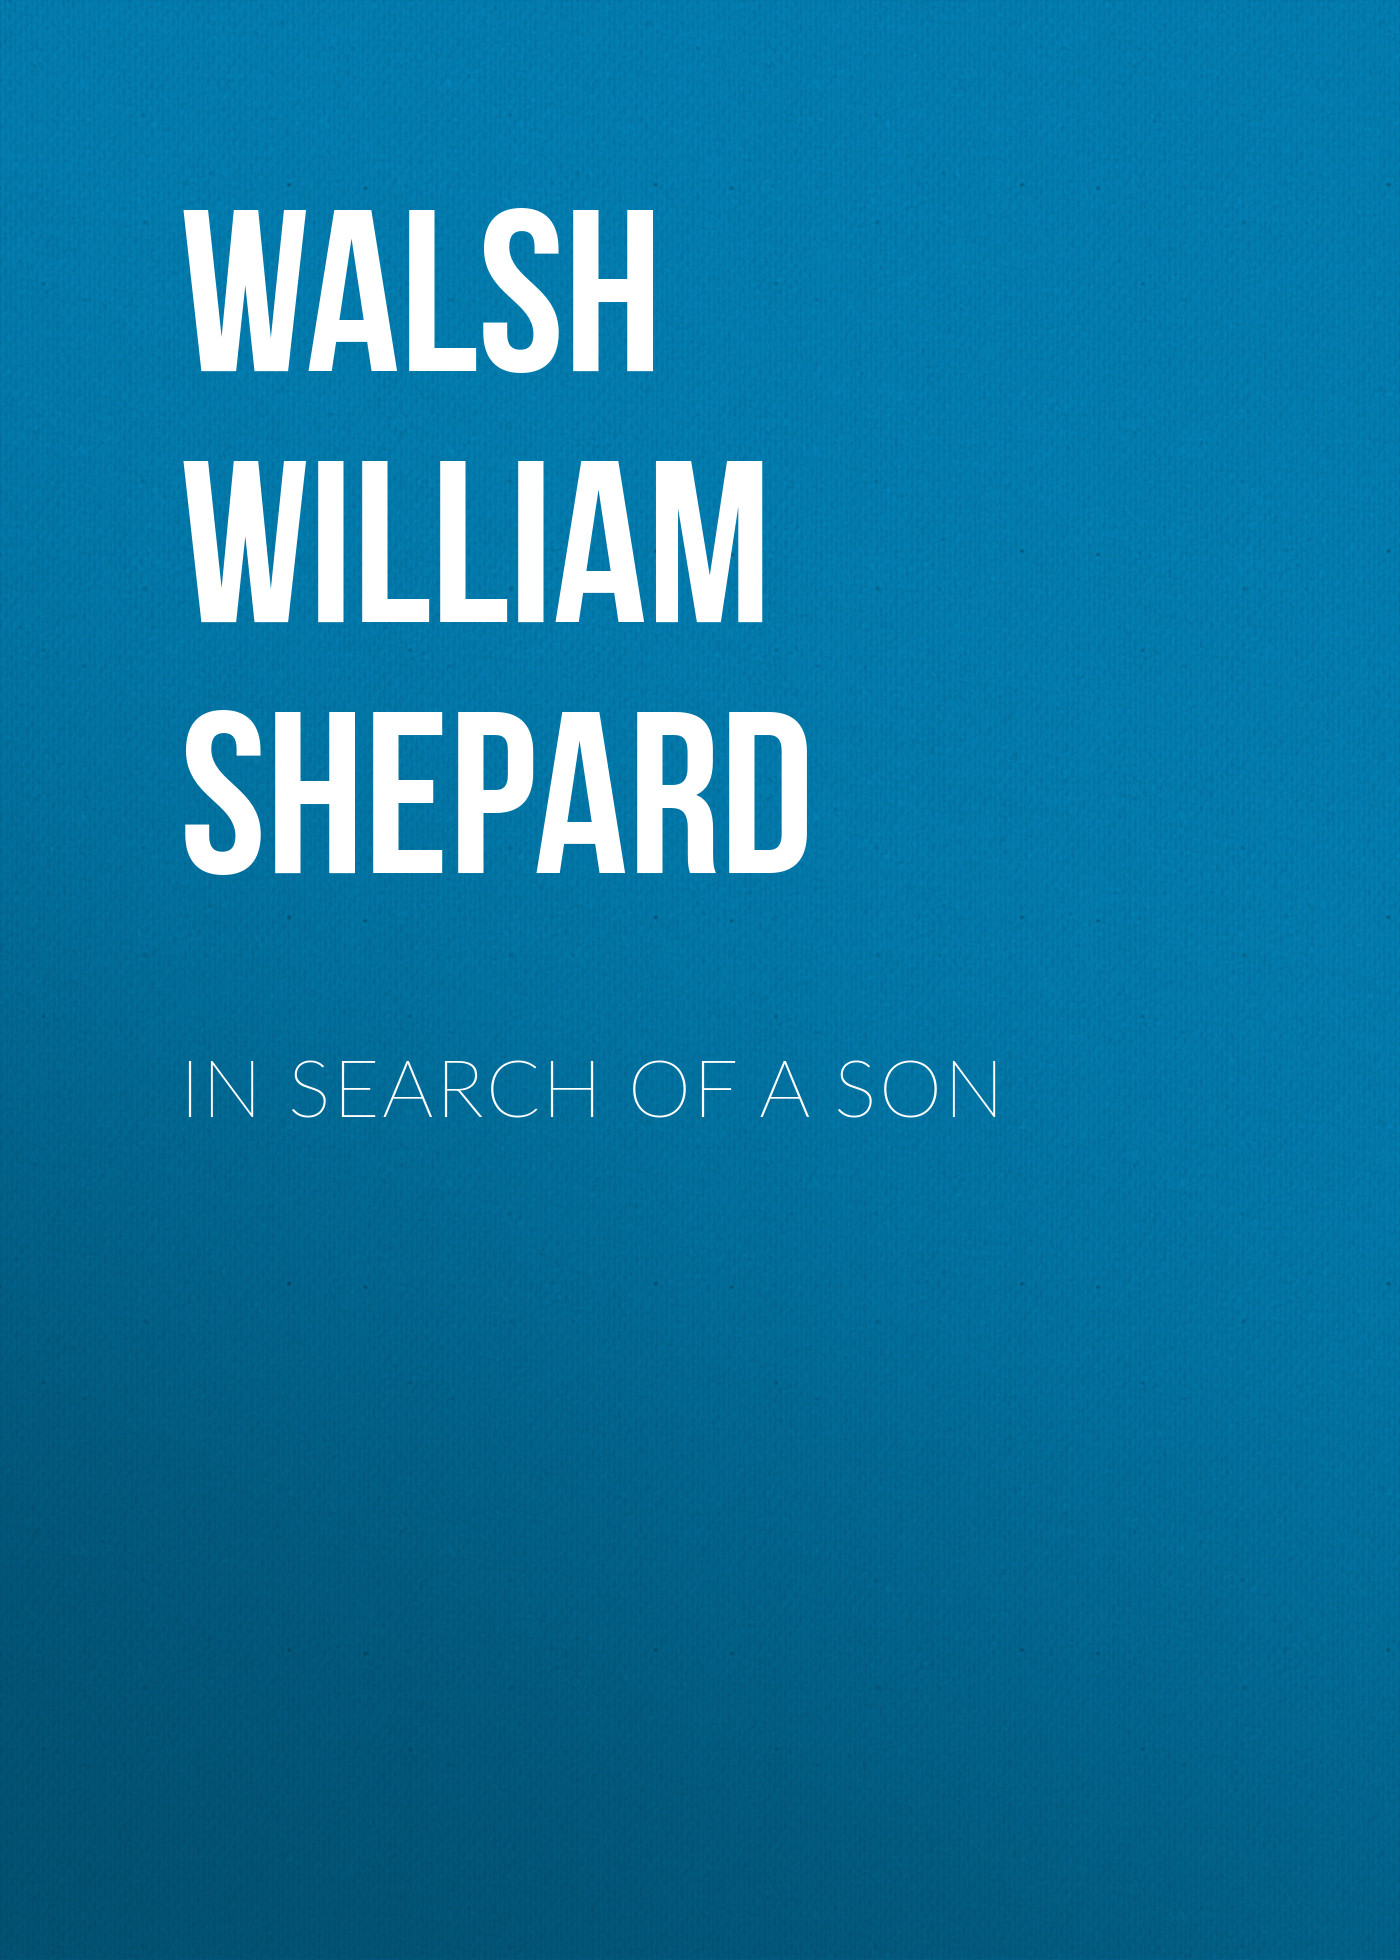 Walsh William Shepard In Search of a Son delinda n baker in search of truth 31 day devotional